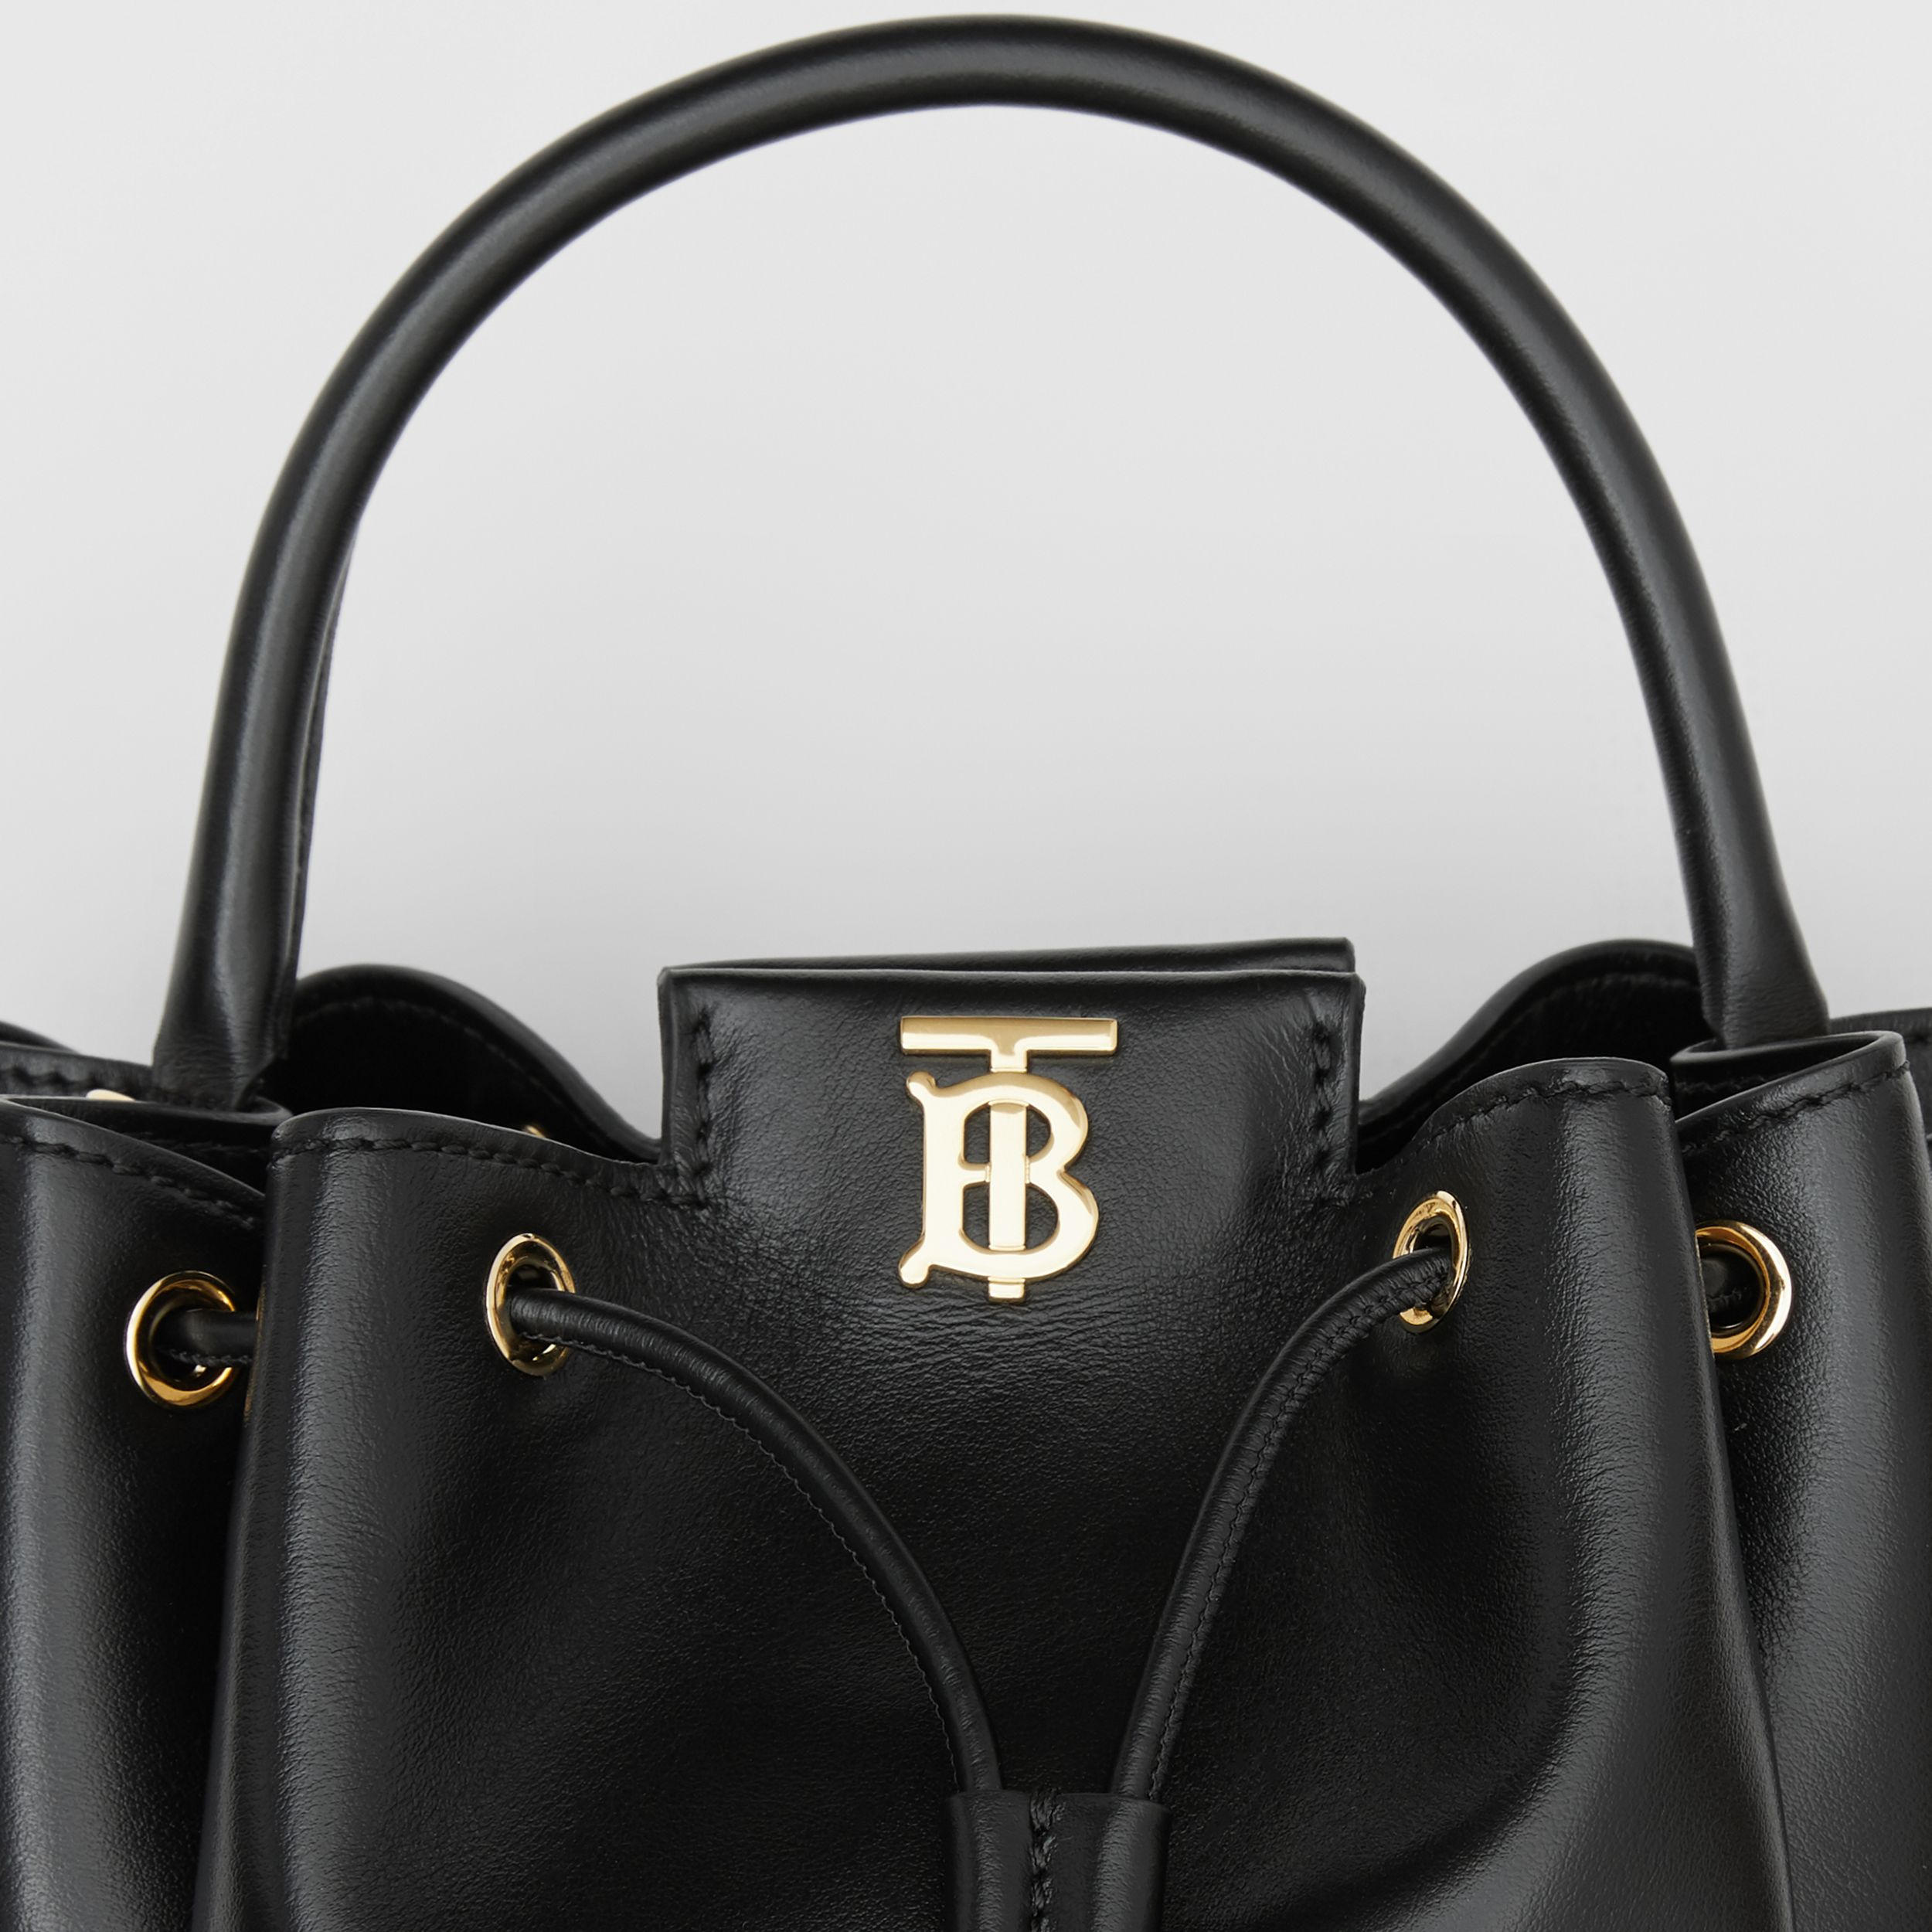 Monogram Motif Leather Bucket Bag in Black - Women | Burberry - 2